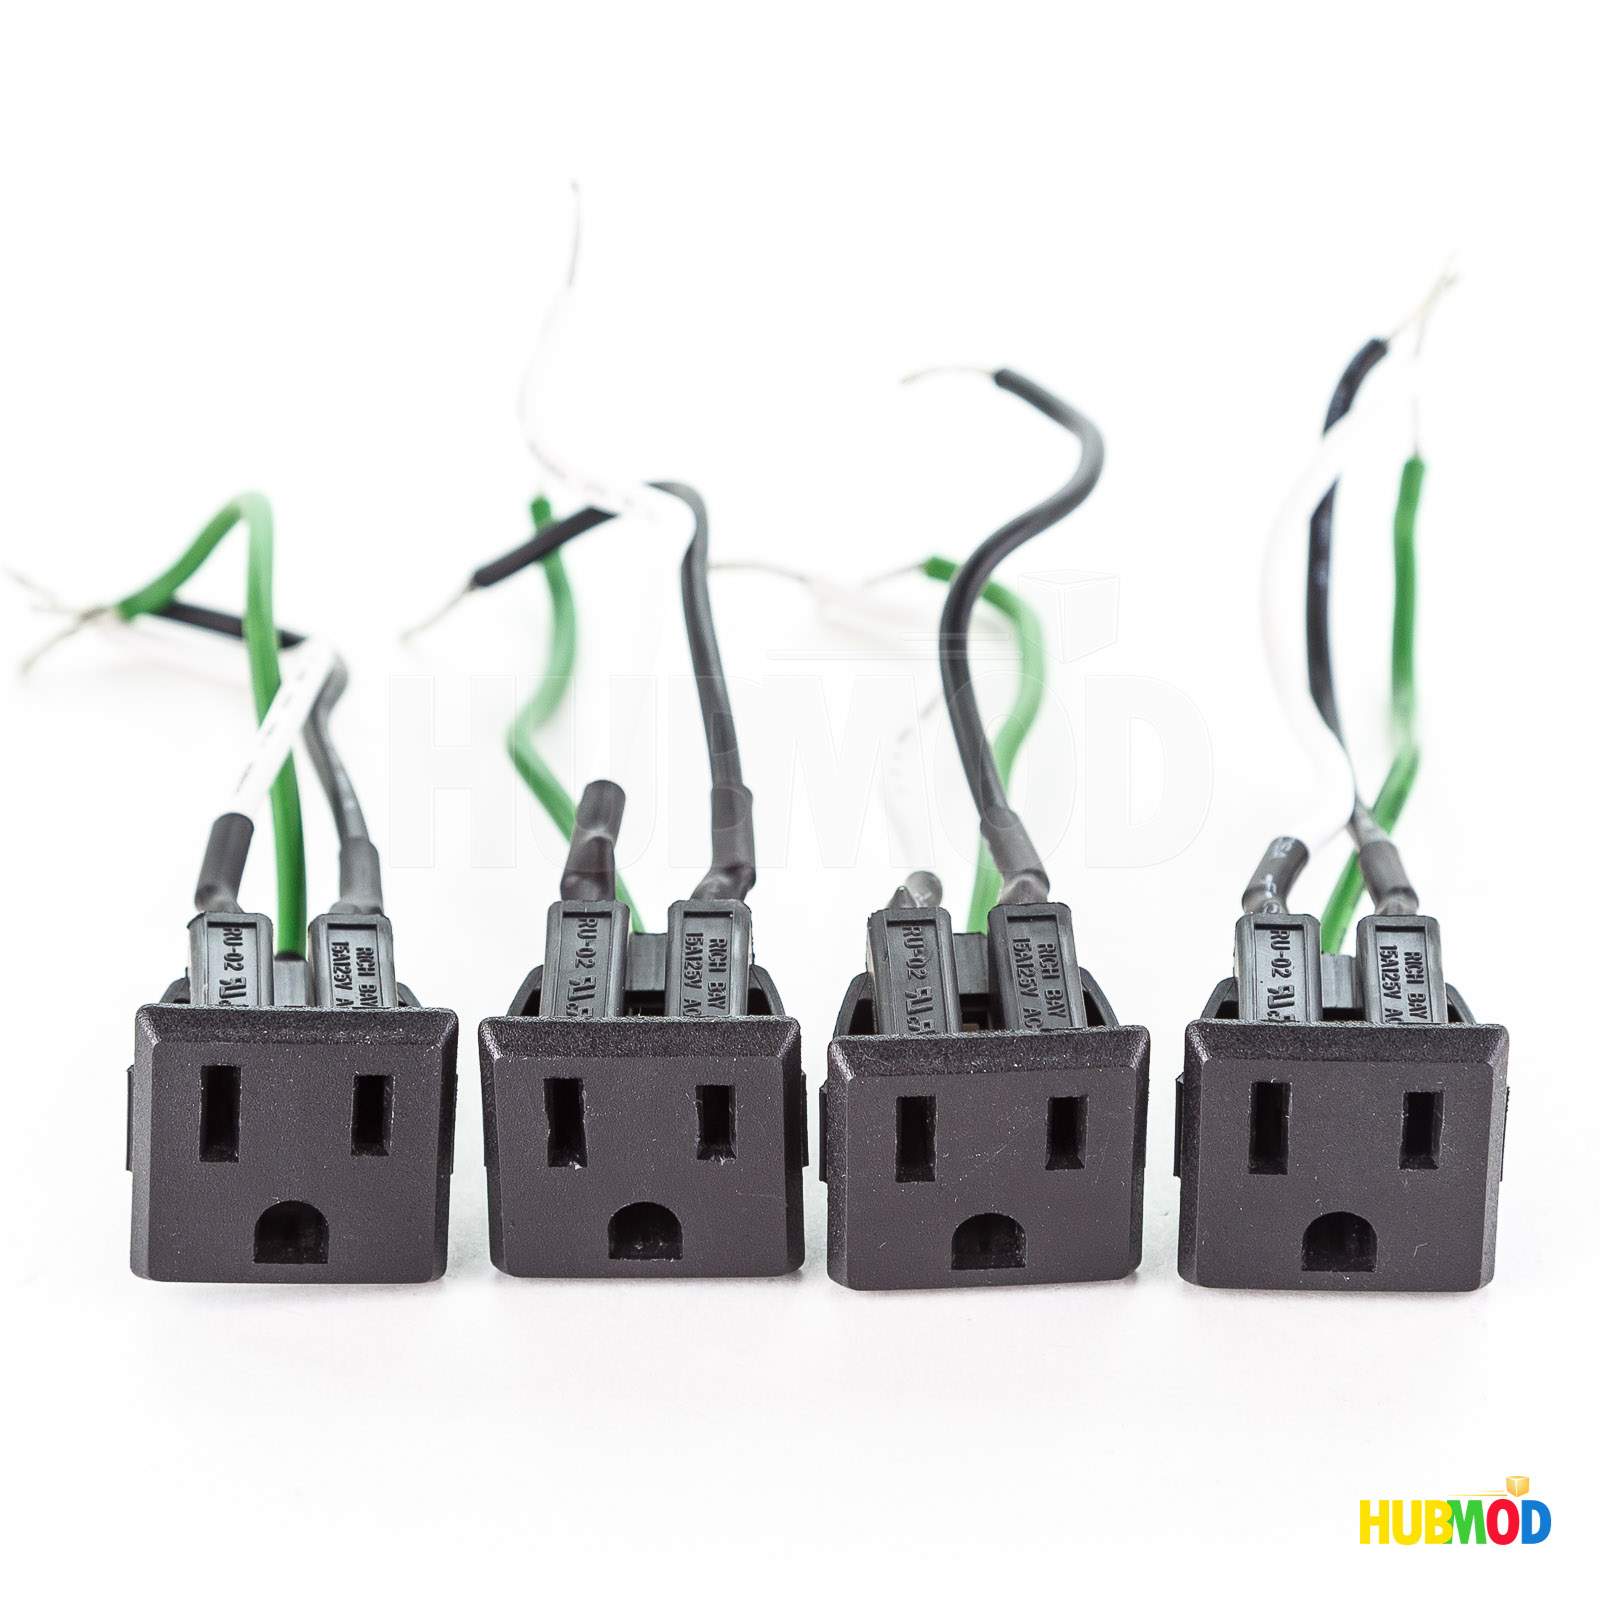 Details about 4X RICH BAY RU-02 AC Plug 15A 125V Socket Outlet Power on